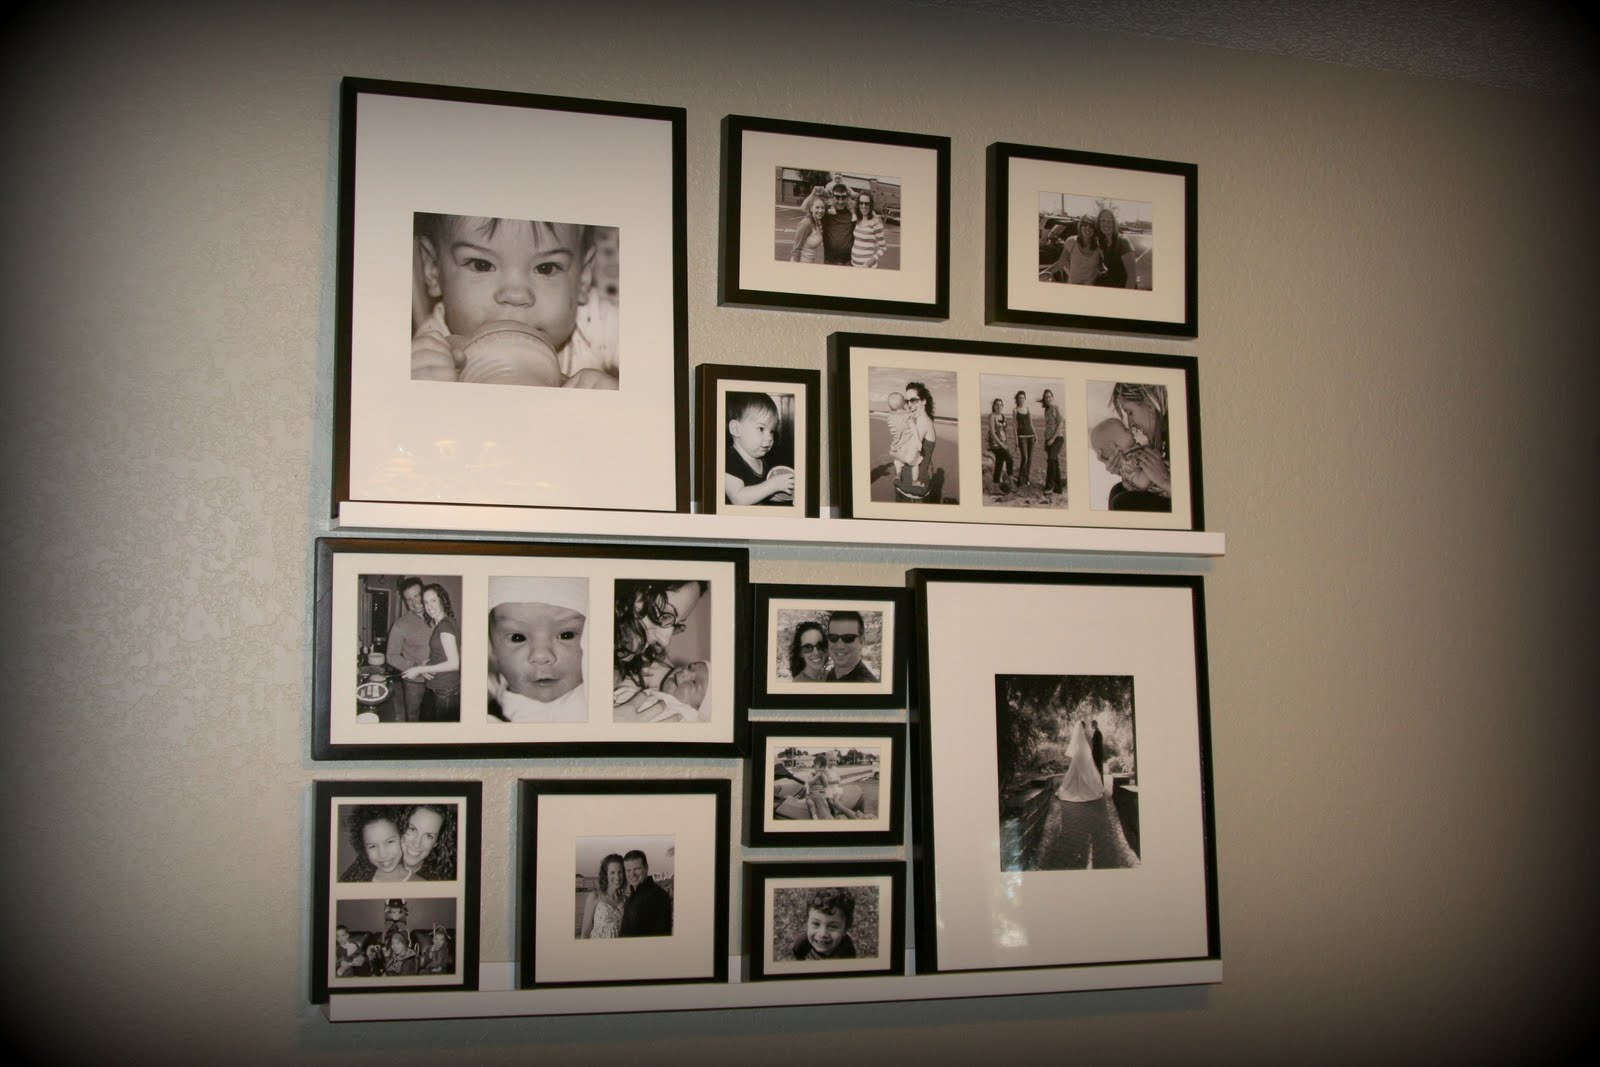 Wall Ledge Design Ideas : One more thing decorating with picture ledges